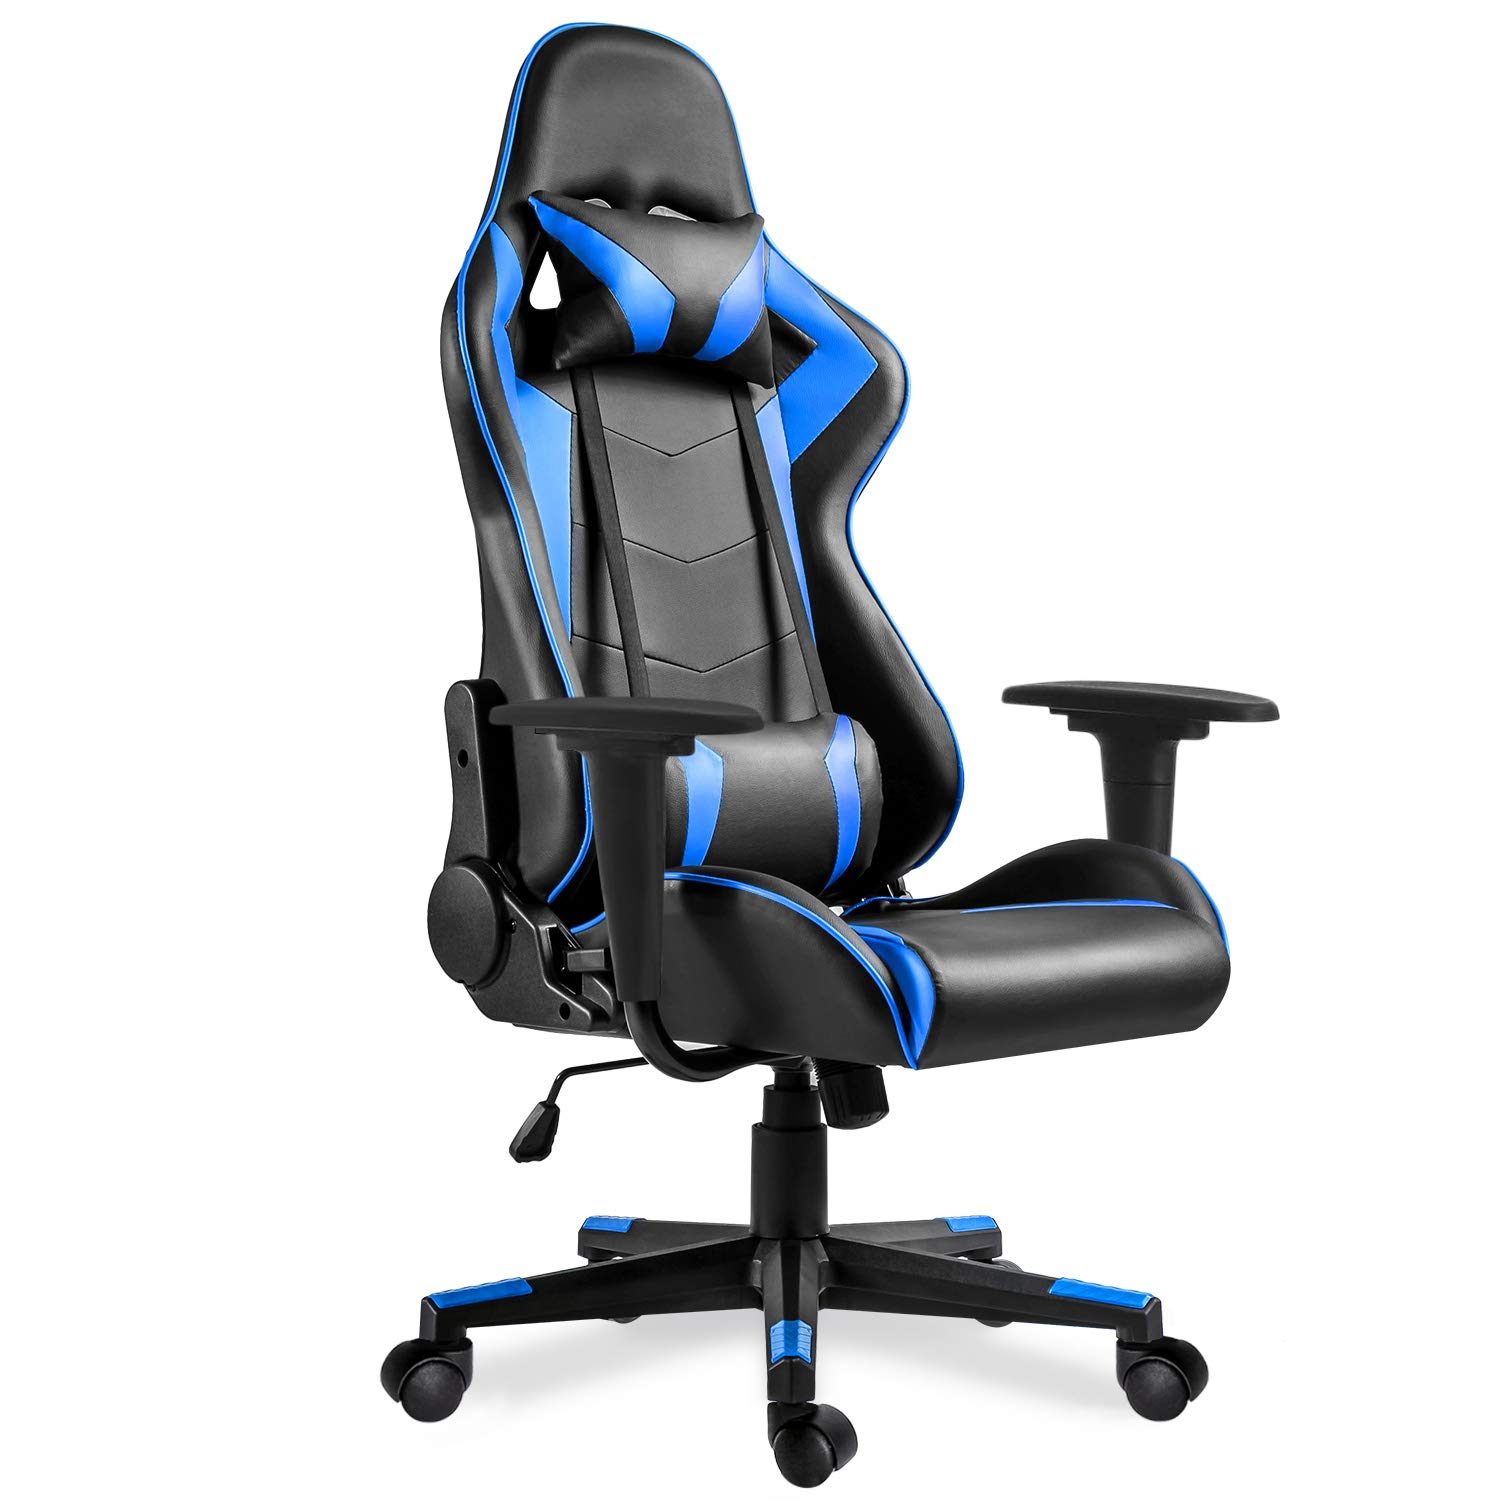 Video Gaming Chair Racing Office-PU Leather High Back Ergonomic 175 Degree Adjustable Swivel Executive Computer Desk Task Large Size,Headrest and Lumbar Support, Blue